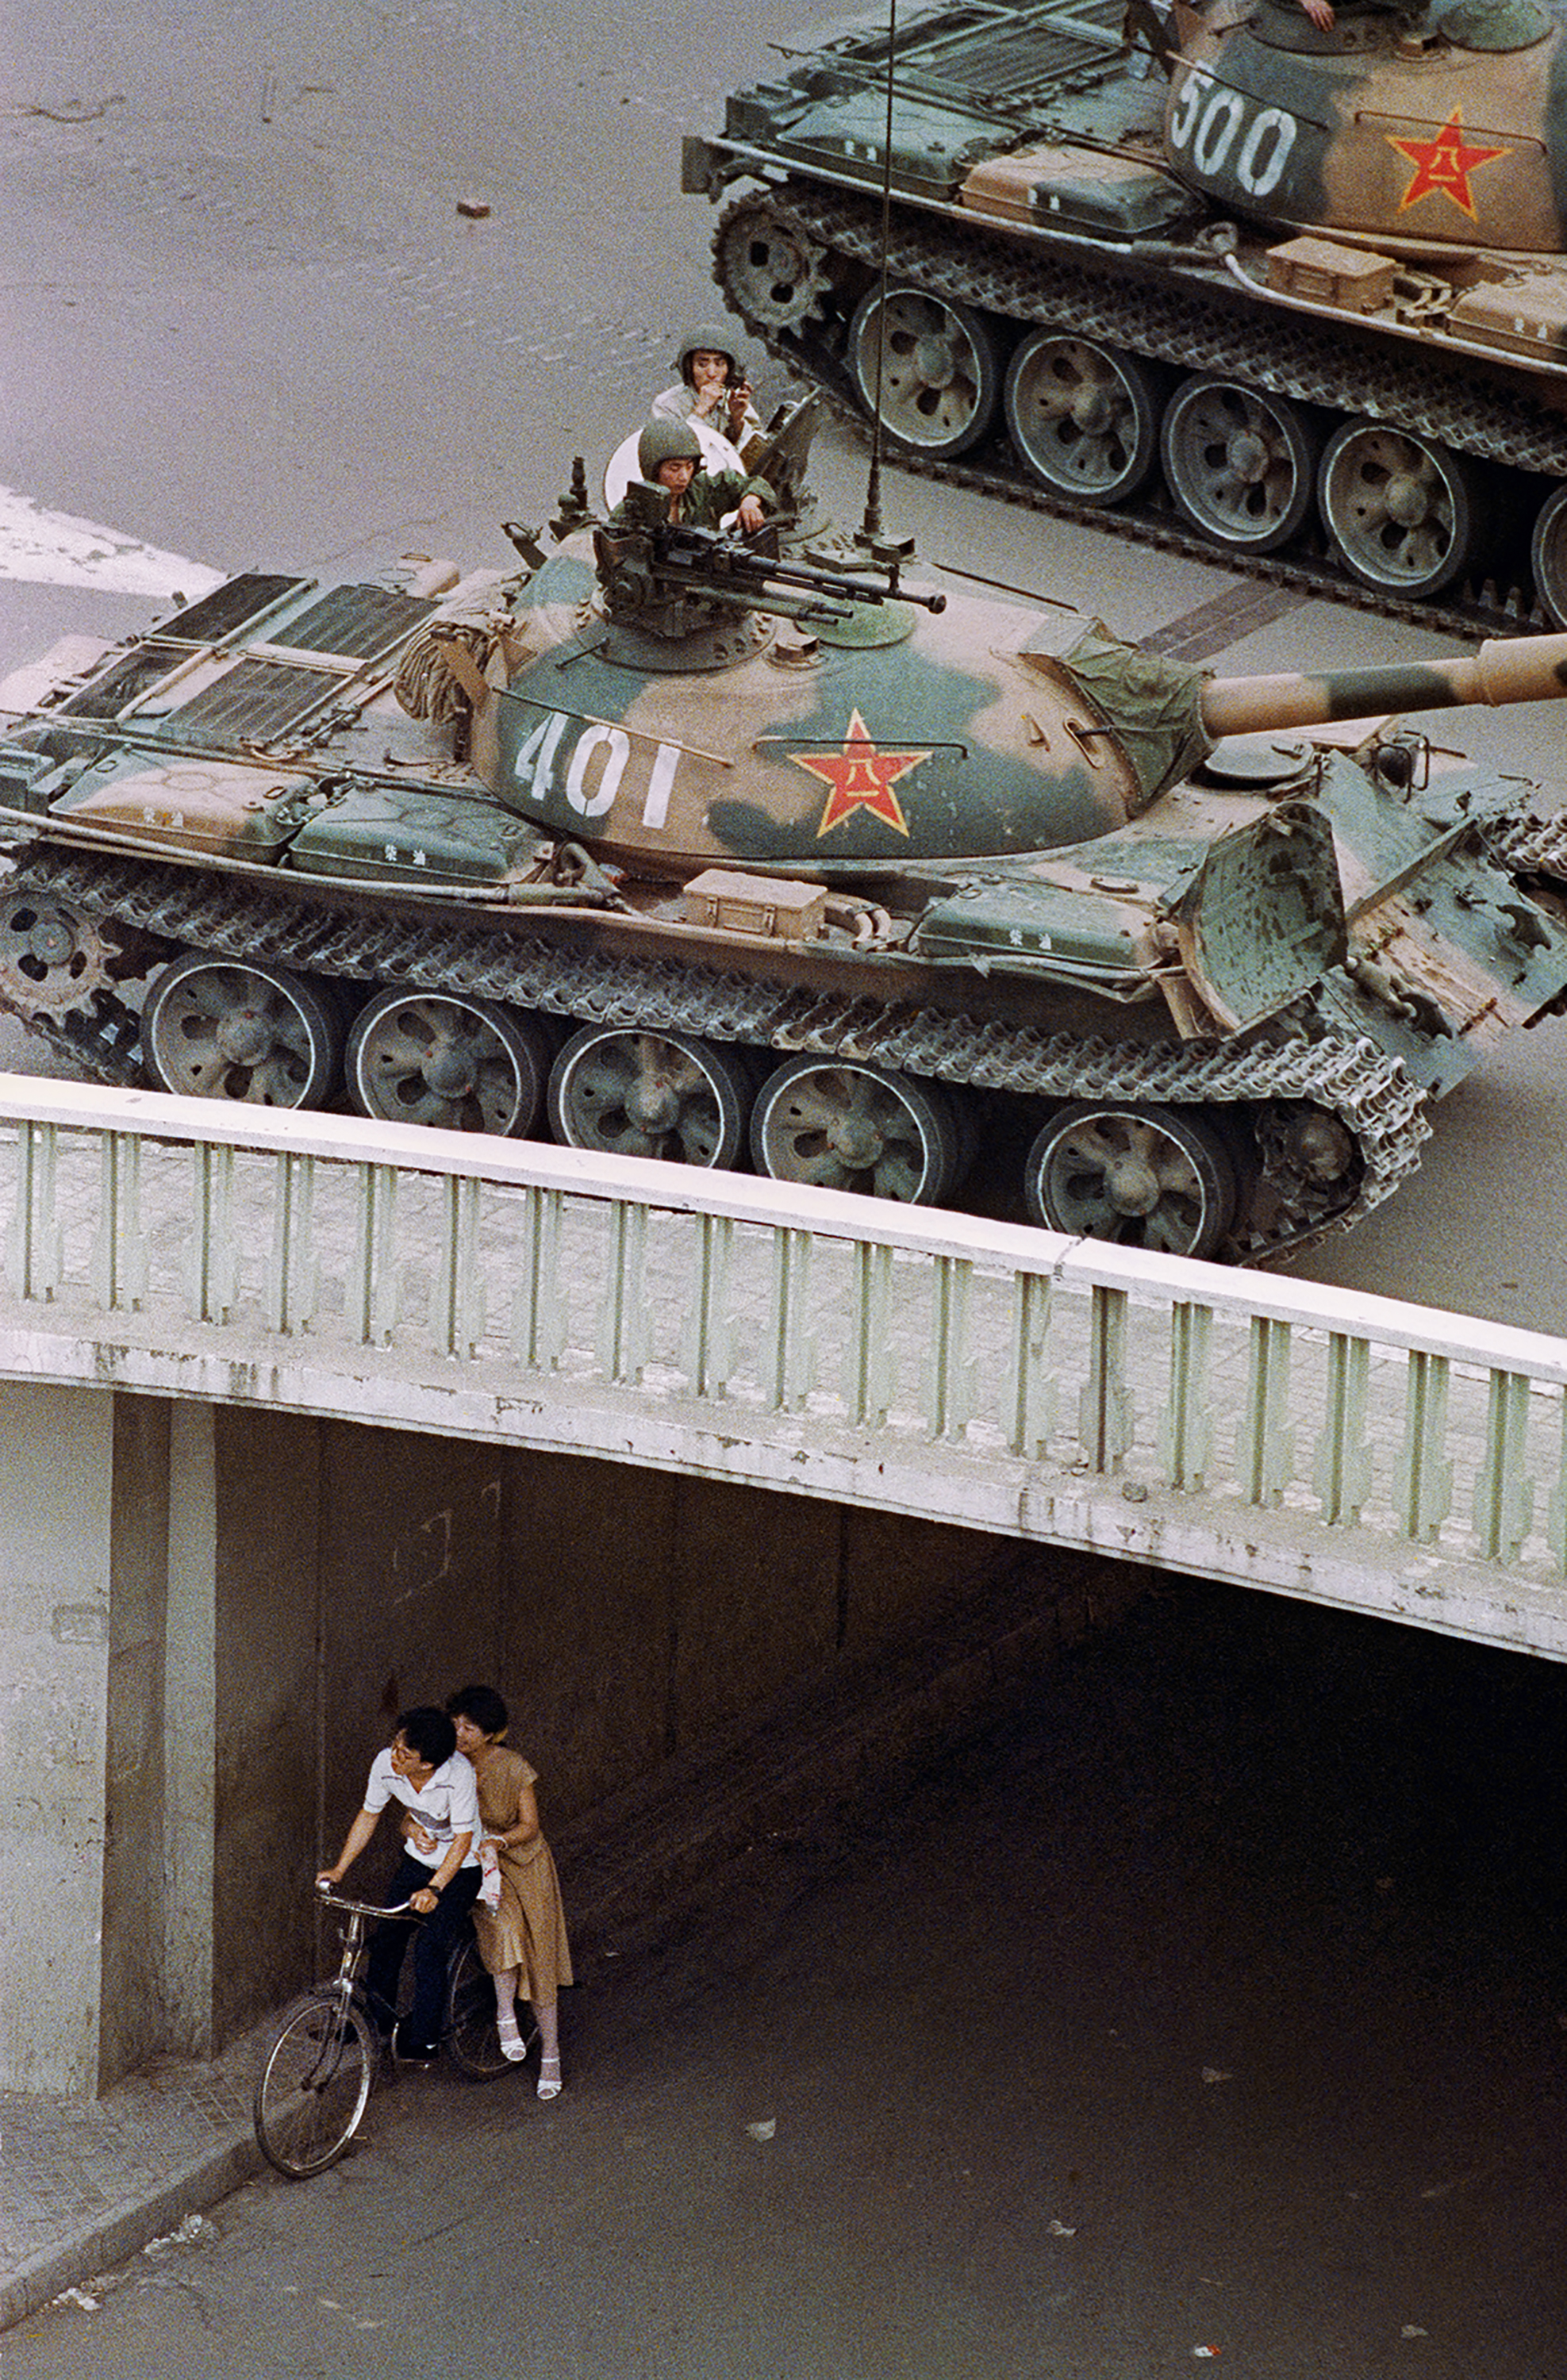 A young couple on a bicycle hide from Chinese soldiers in a tank overhead during the Tiananmen Square protests that were crushed June 4, 1989.